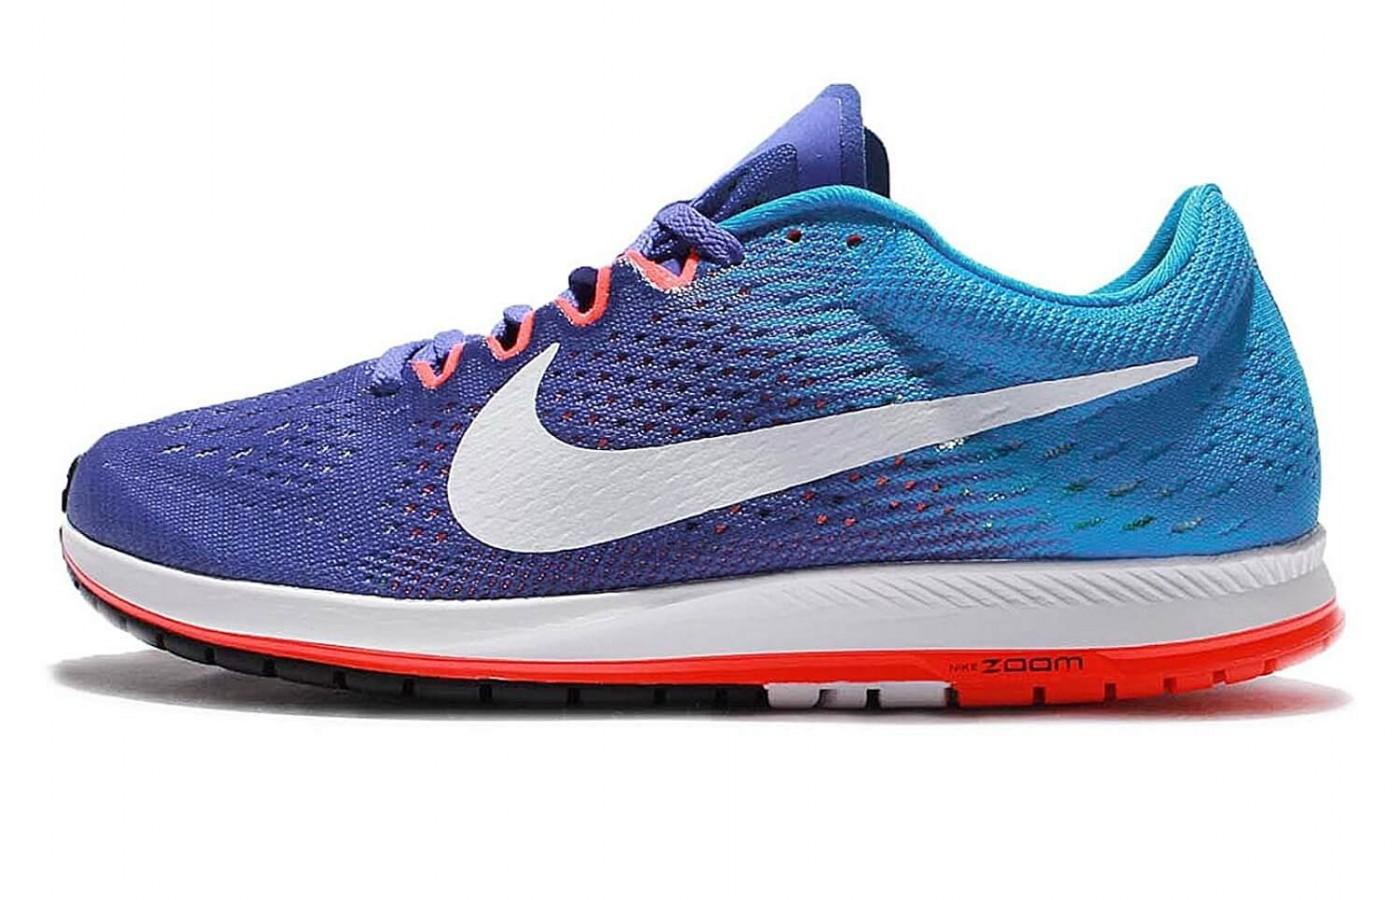 Nike Air Zoom Streak 6 has a Phylon midsole